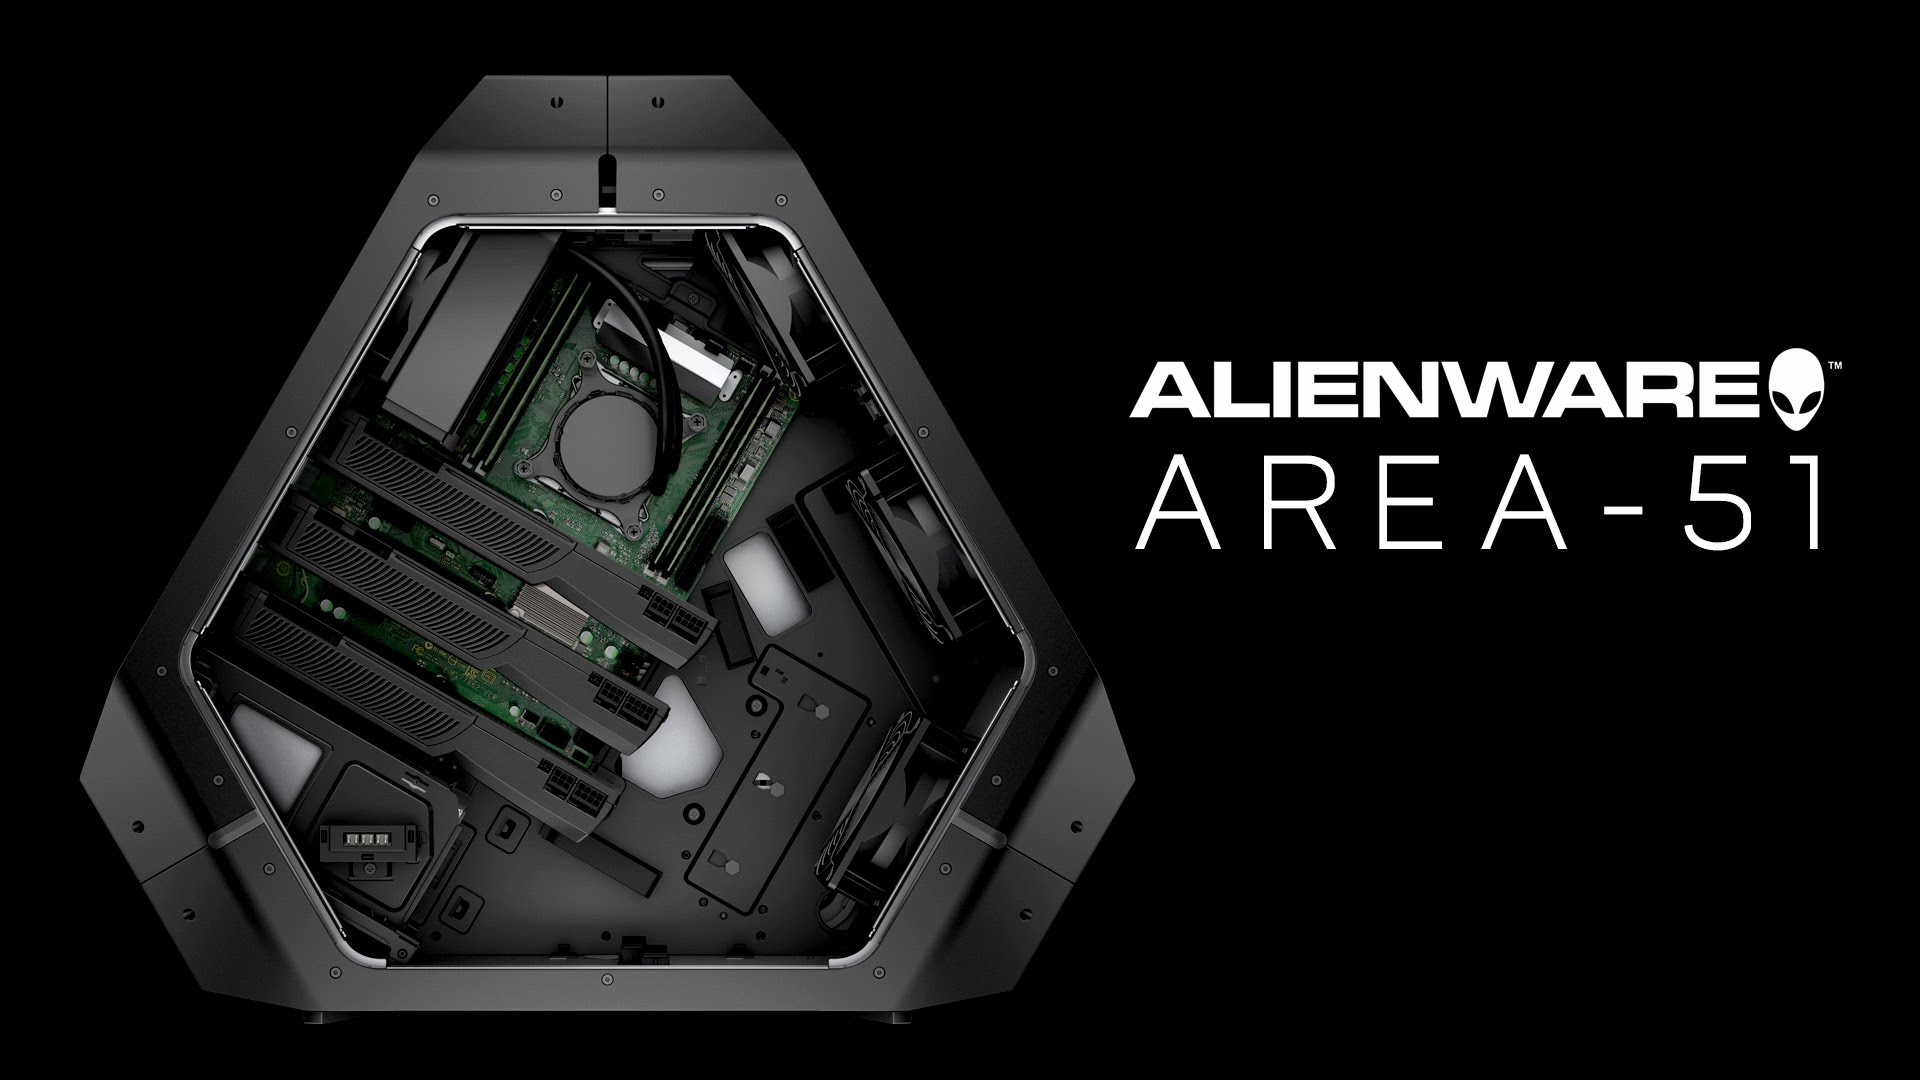 Alienware Area 51 Wallpaper - WallpaperSafari